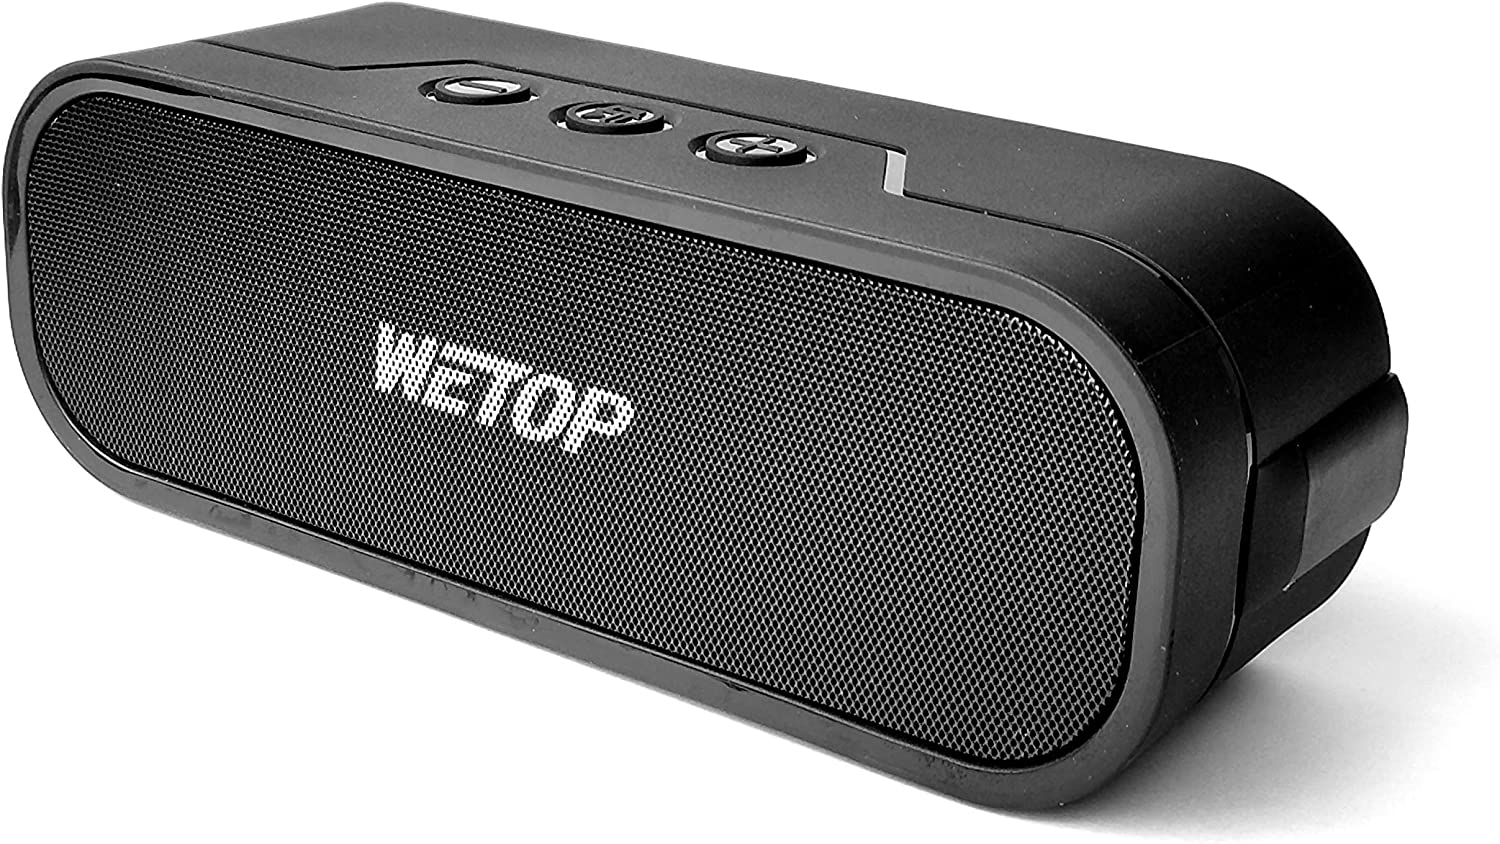 IPX 5 Waterproof WETOP 4017 Bass and Treble by New Vibes H.D Sound Quality Built for Outdoors 20 Watt Portable Bluetooth Speaker